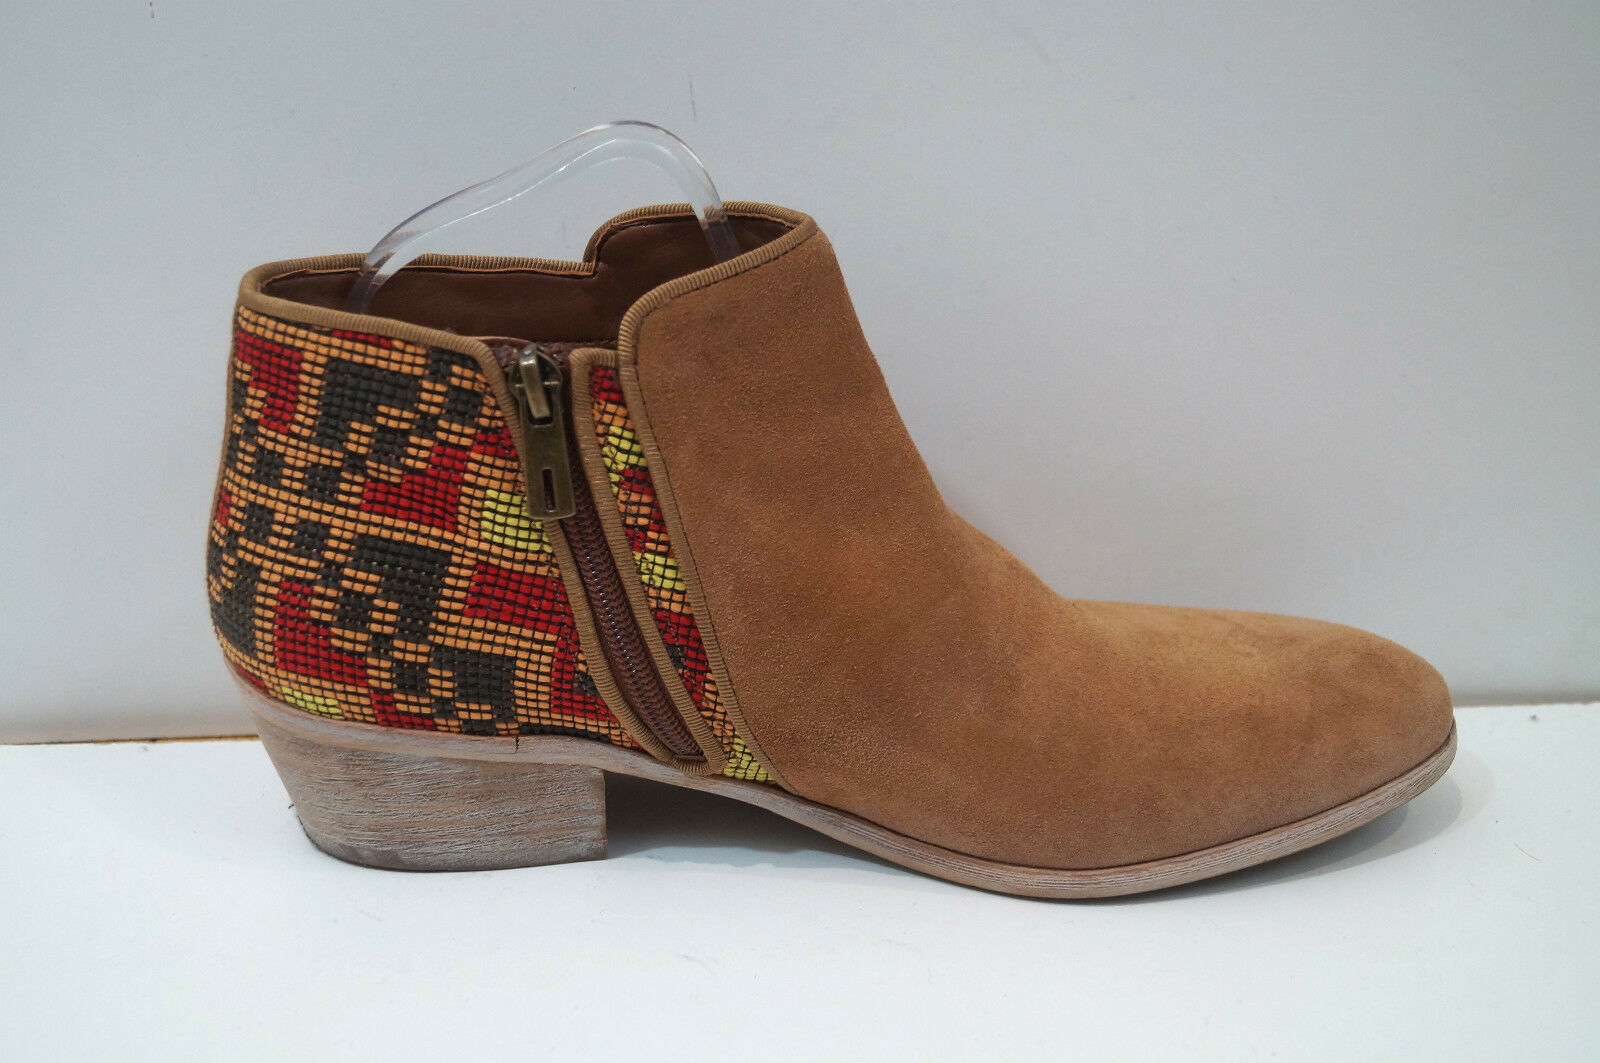 SAM EDELMAN Women's Tan Suede & Multi Colour Embroidery Ankle Ankle Ankle Boots UK8; US10M 962dd6